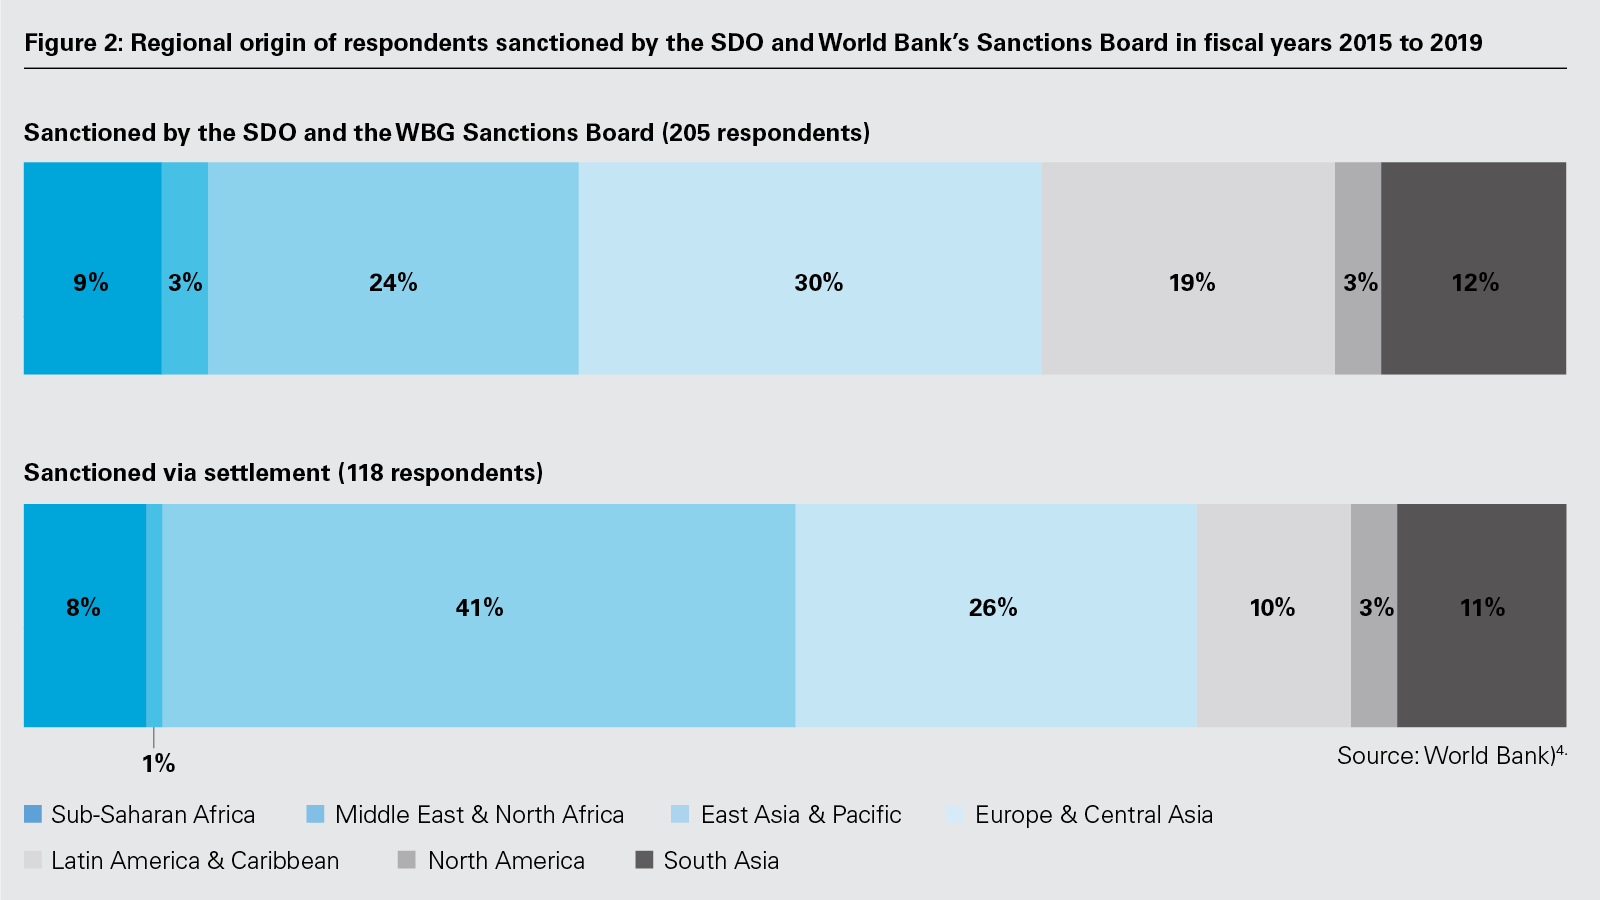 Figure 2: Regional origin of respondents sanctioned by the SDO and World Bank's Sanctions Board in fiscal years 2015 to 2019 (PNG)